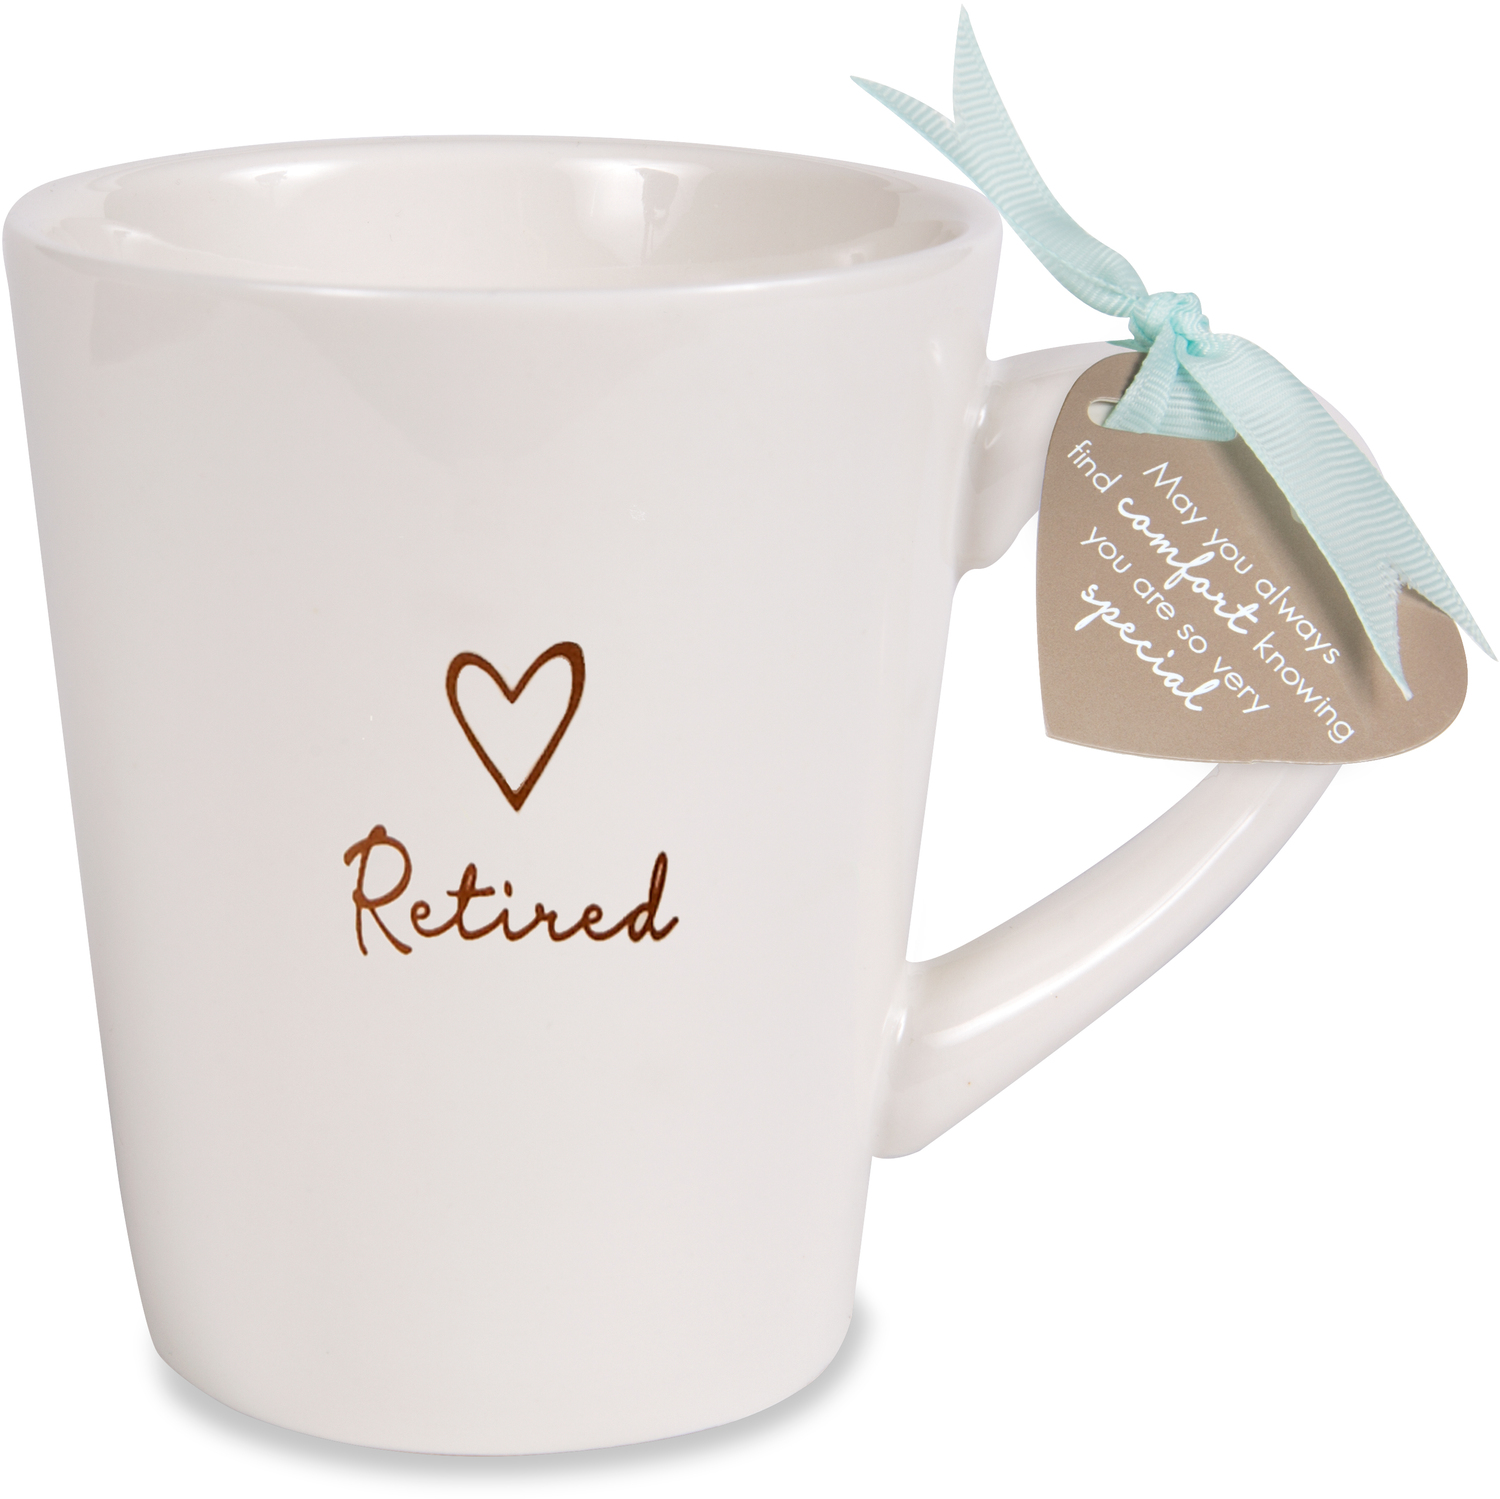 Retired by Comfort Collection - Retired - 15 oz Cup